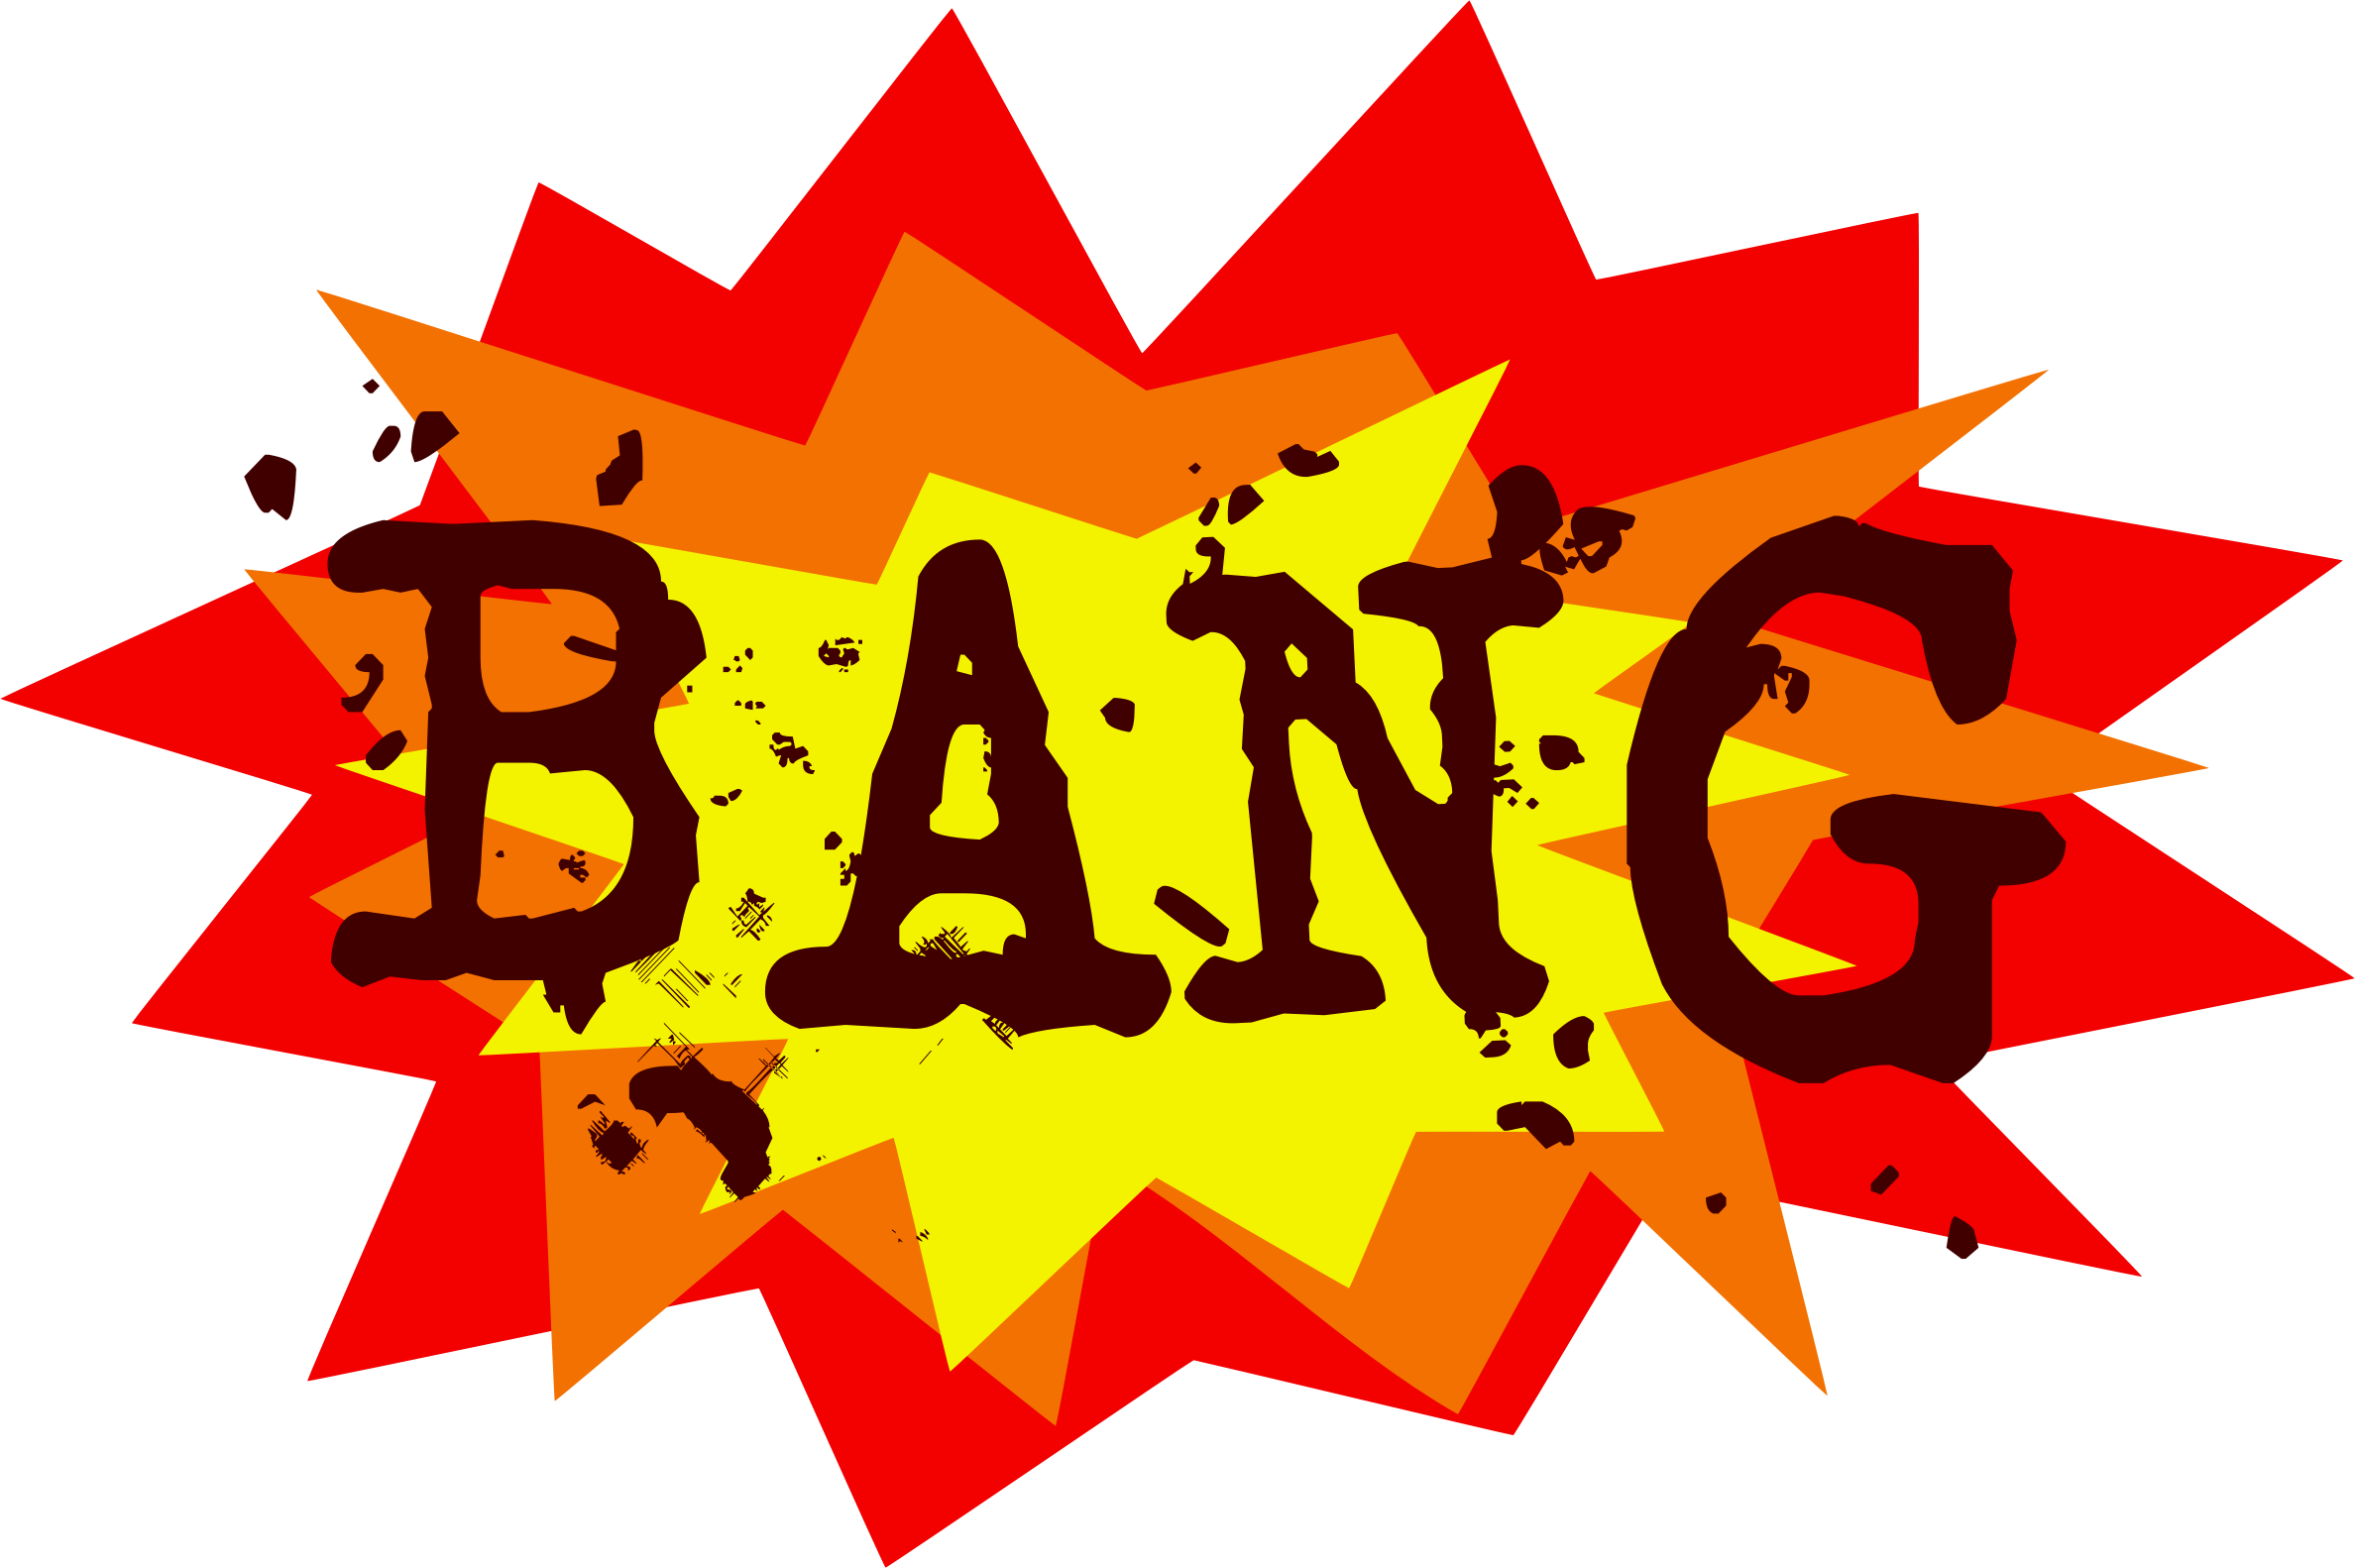 BANG by Arvin61r58